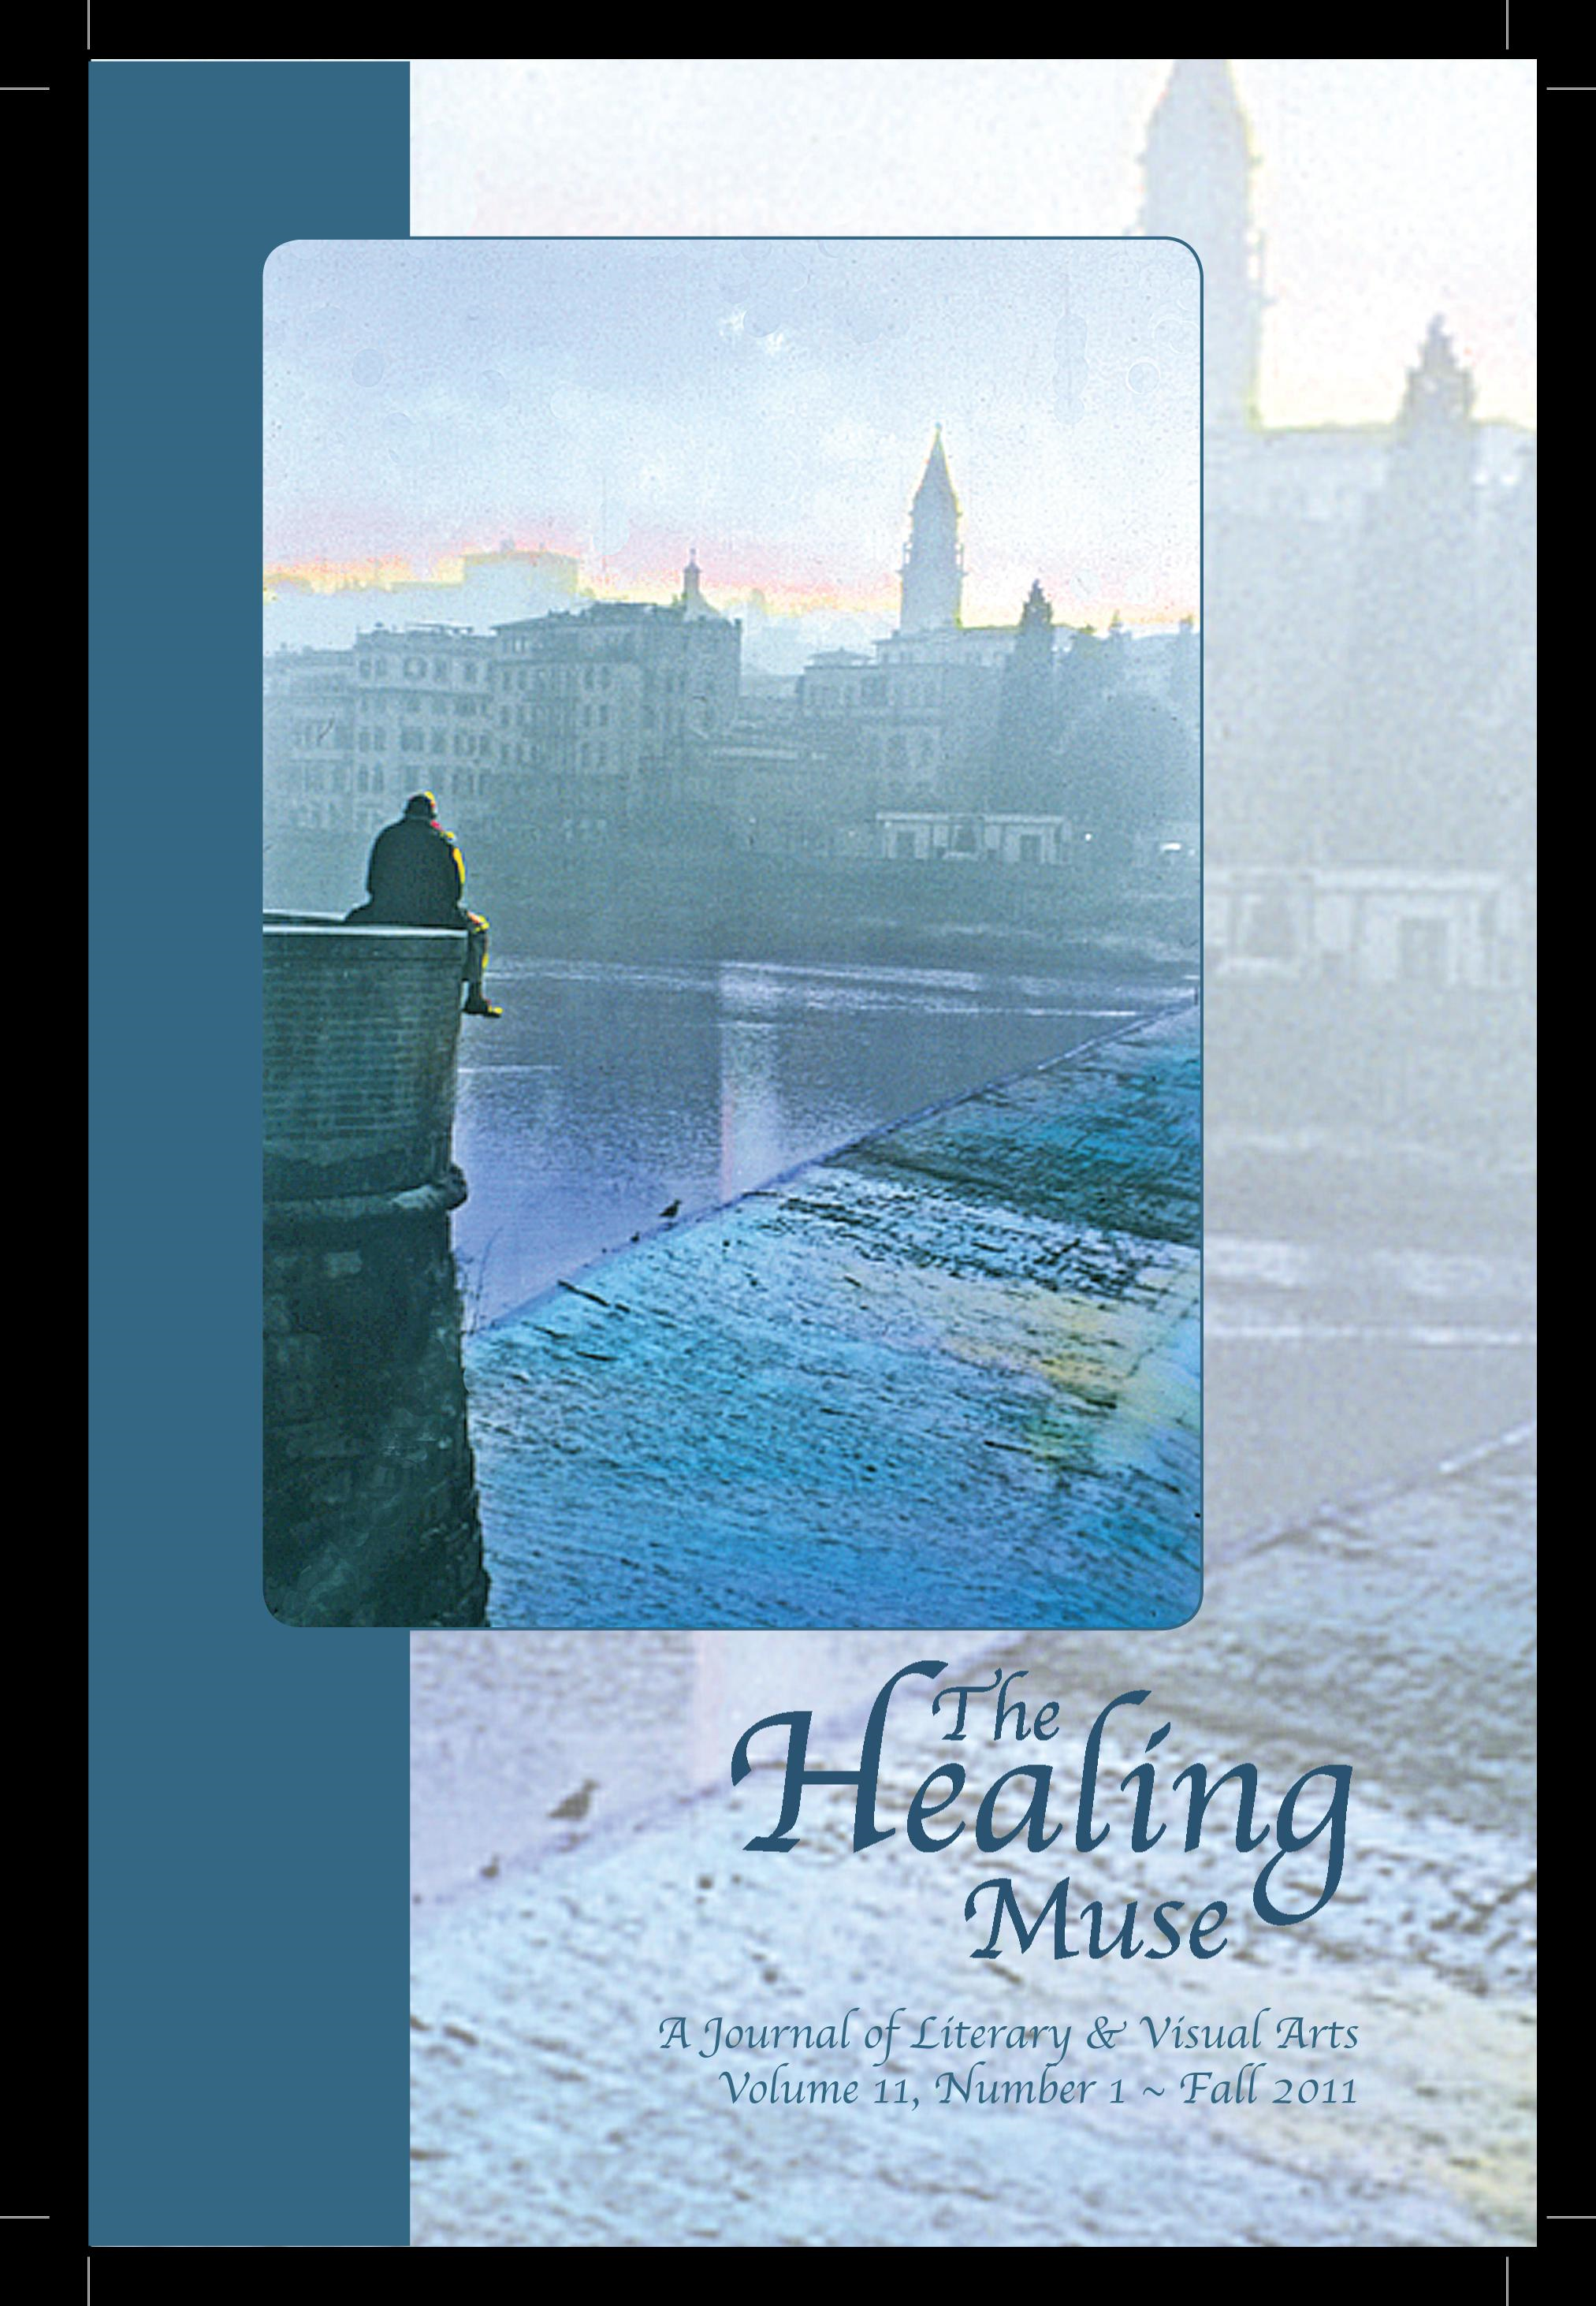 The Healing Muse: A Journal of Literary & Visual Arts